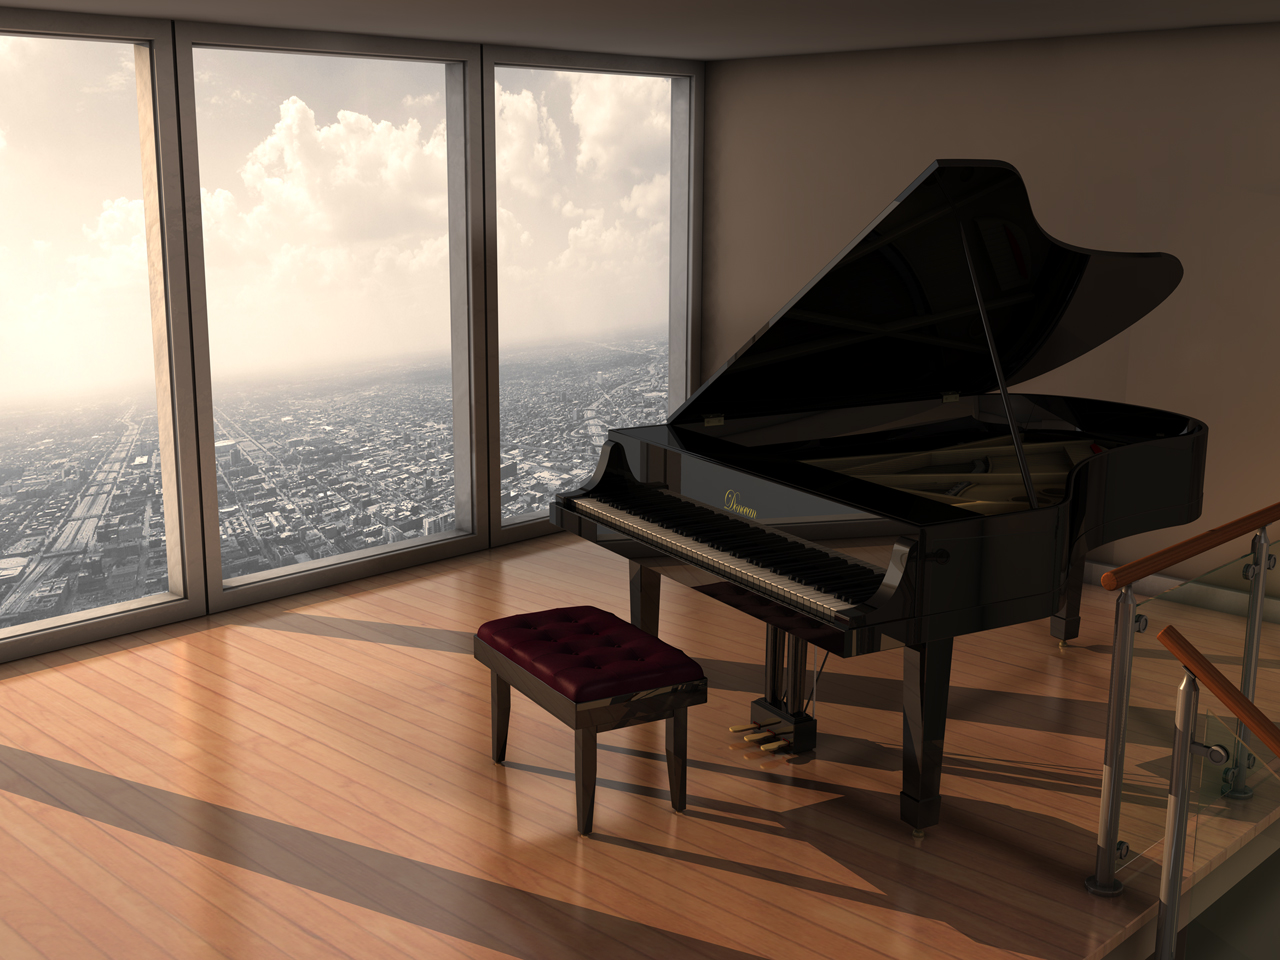 Chapter 32 golden feelings edward cullen love story for How to place a piano in a room